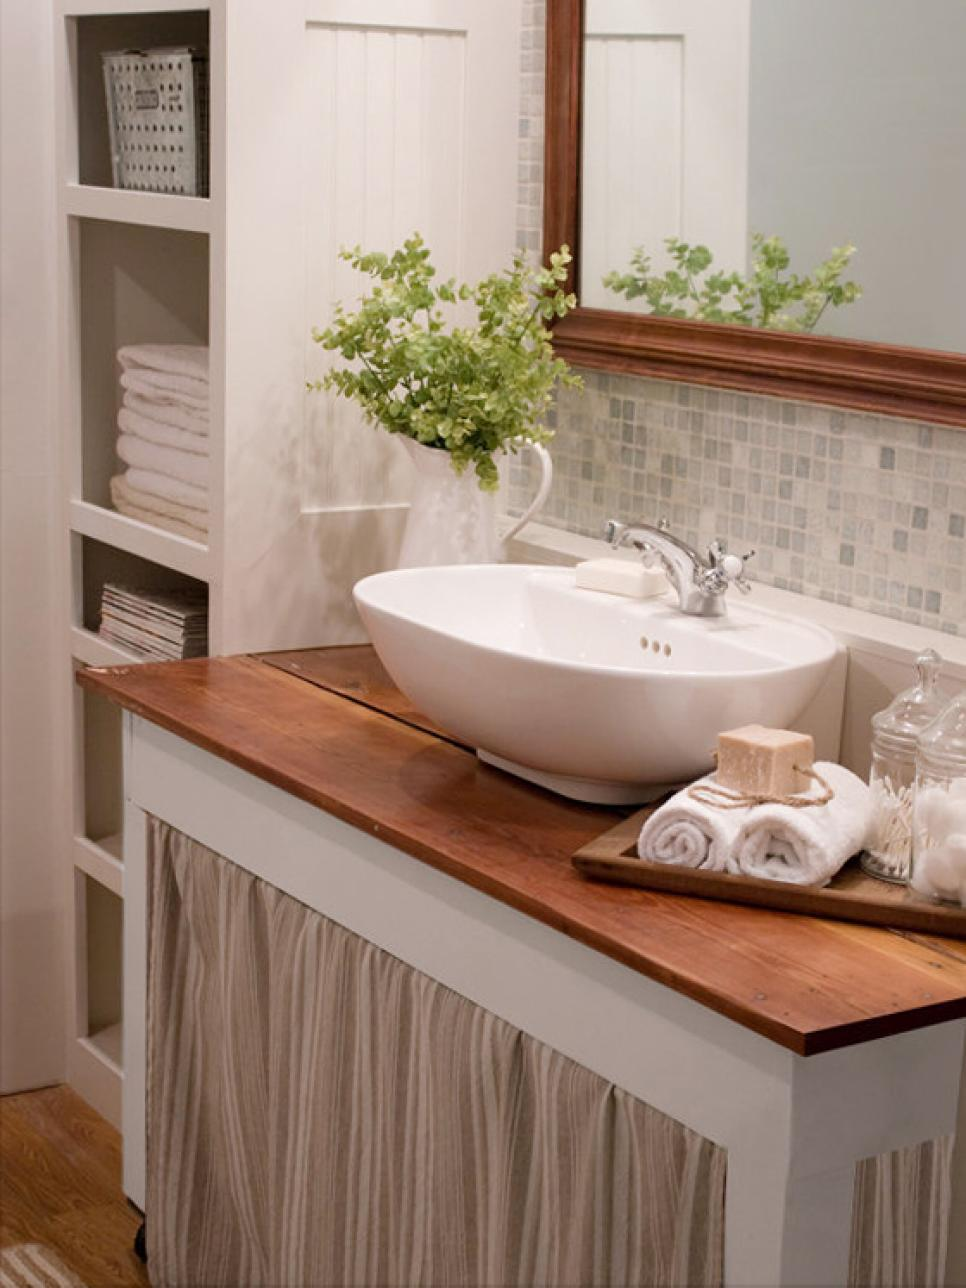 Turn Your Before Bathroom Into An After HGTV - Diy bathroom remodel for small bathroom ideas